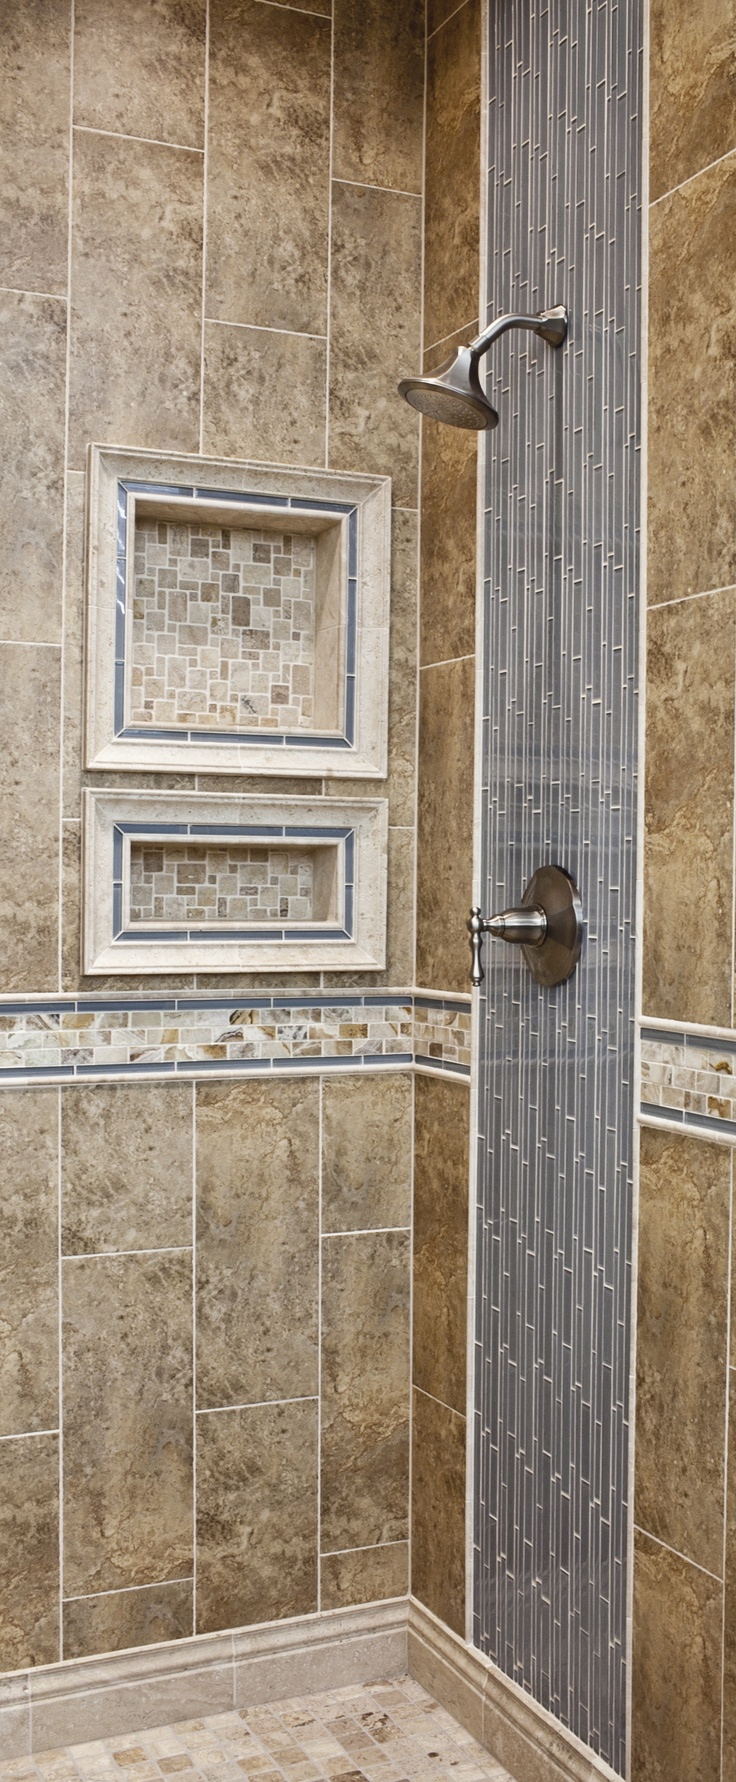 The Vertical And Horizontal Accent Tiles Add Unique Charm To This Custom Ceramic  Tiled Shower.